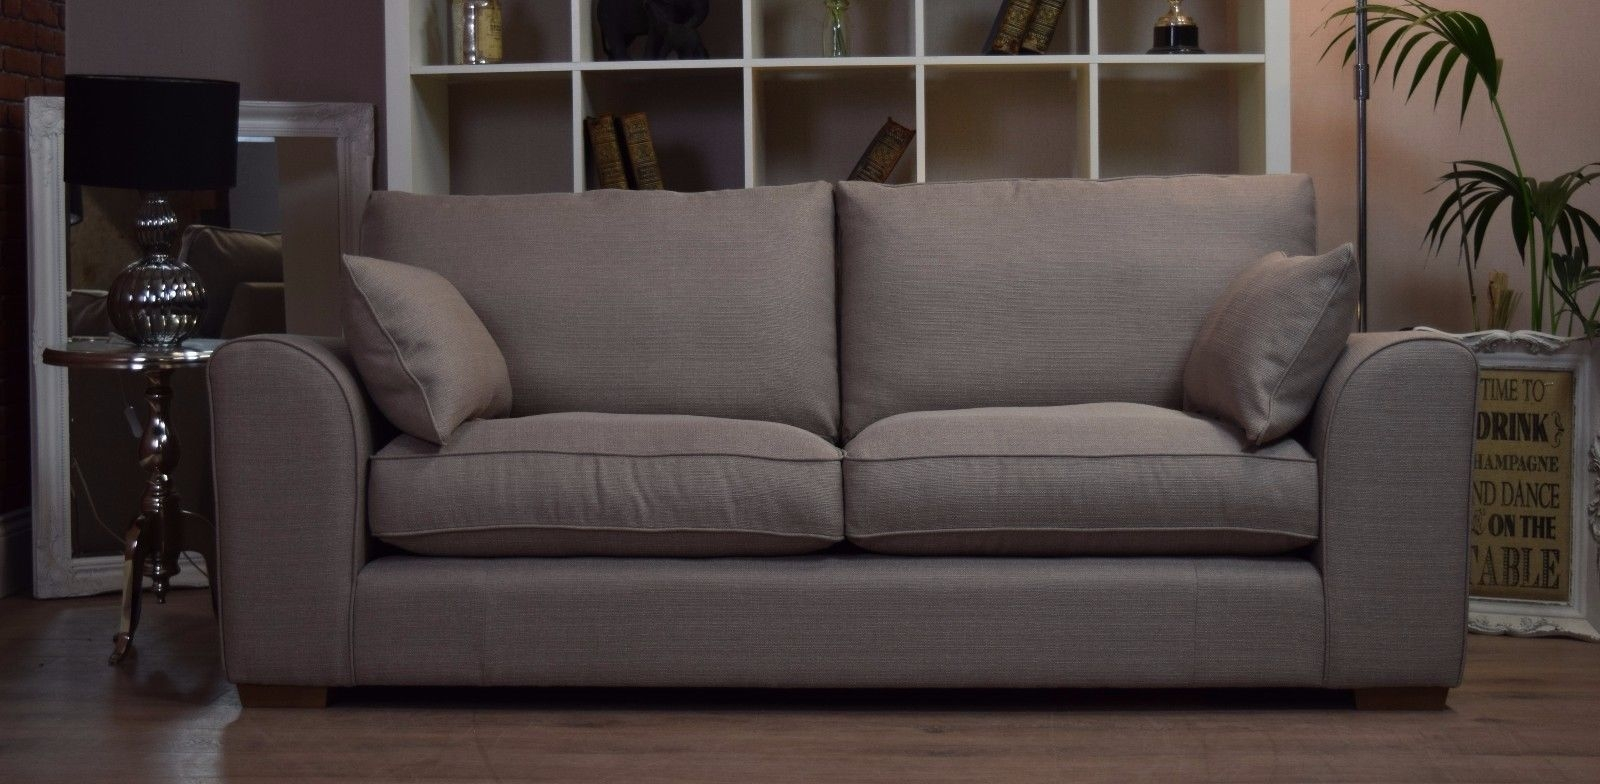 Set New Ashdown 3 Seater Sofa Cuddle Chair Set Beige Mink Within 3 Seater Sofa And Cuddle Chairs (Image 12 of 15)